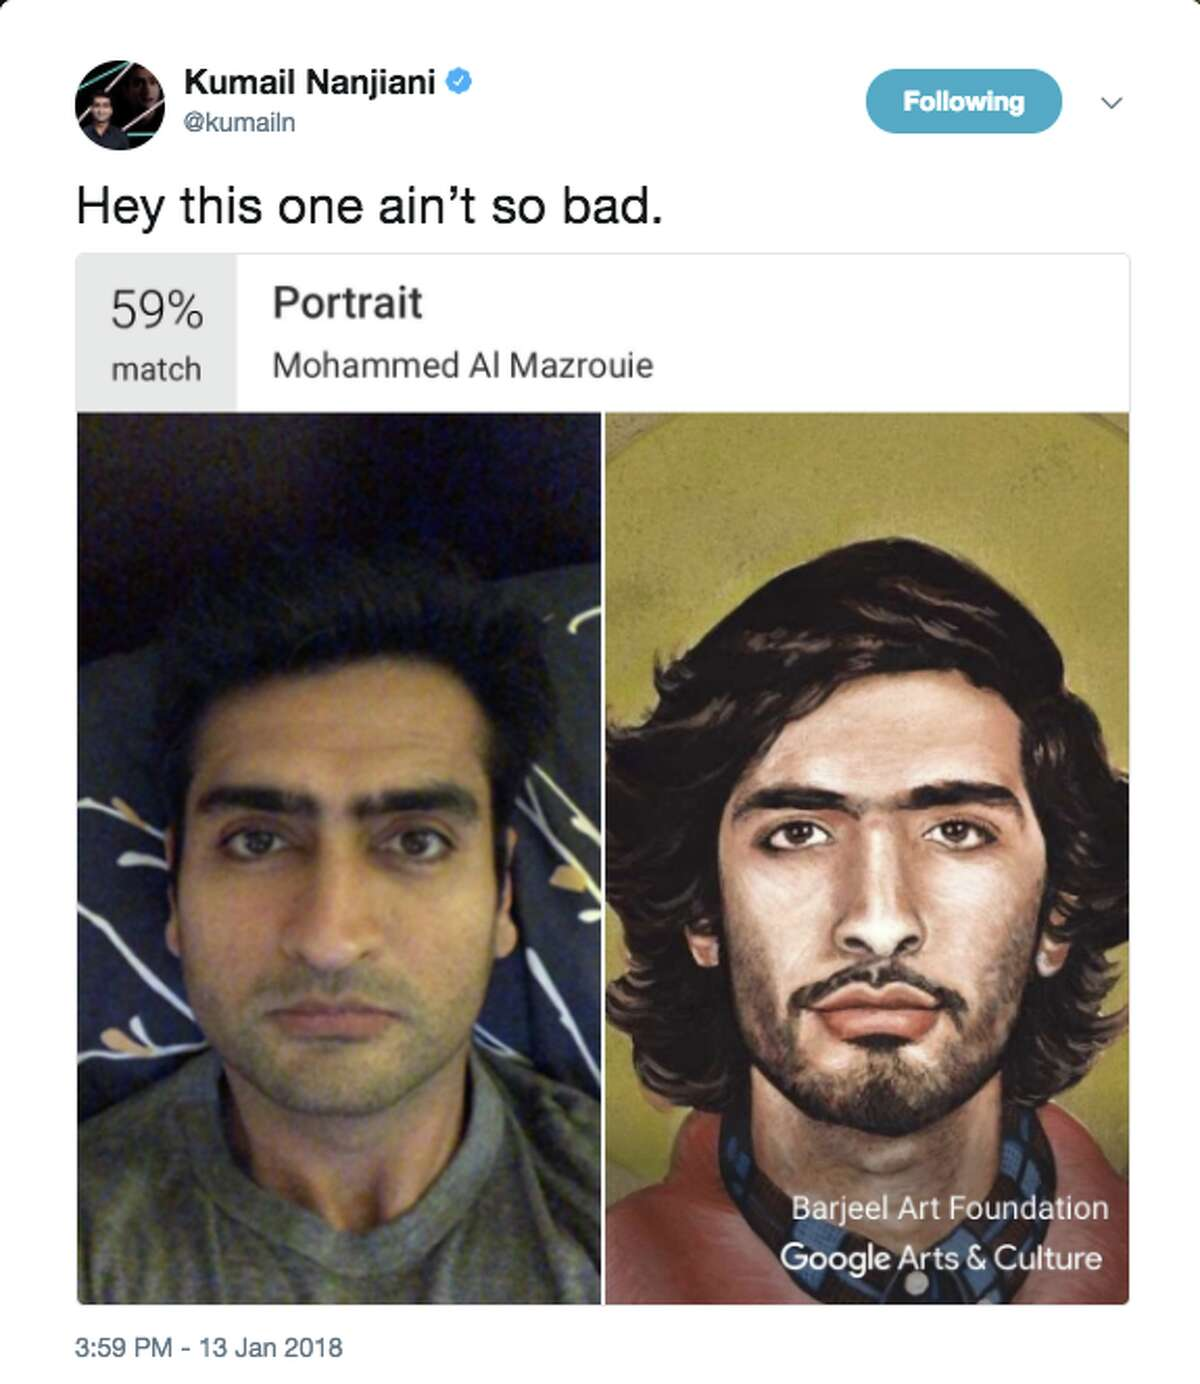 Google Arts and Culture app finds doppelgängers for selfie takers Actor and comedian Kumail Nanjiani deemed his comparison as decent, when he shared his art doppelganger online.